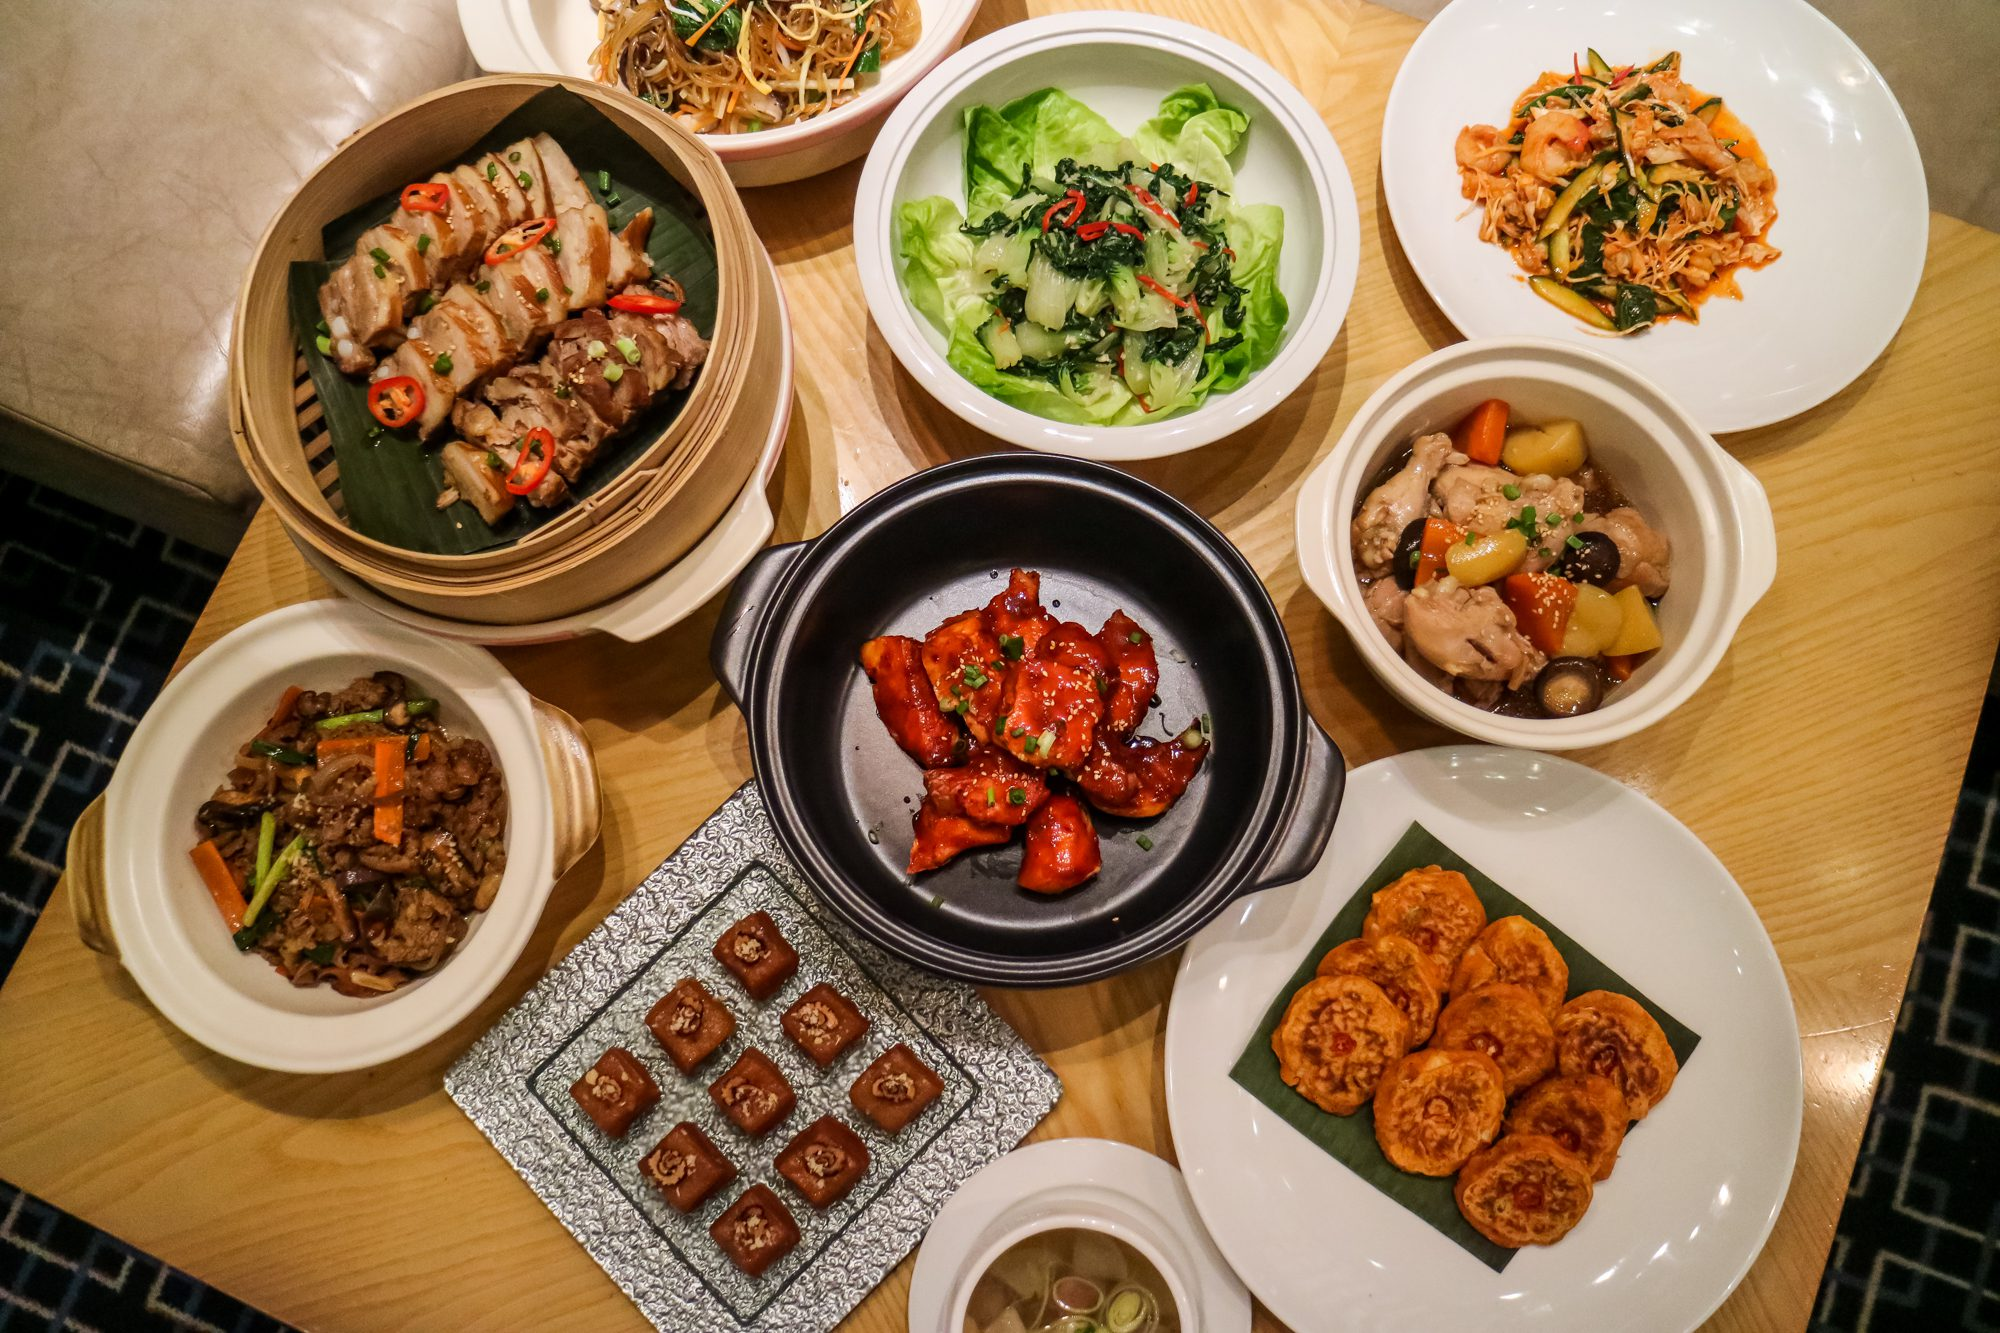 Exciting Tastes of Korea at Marriott Cafe Singapore